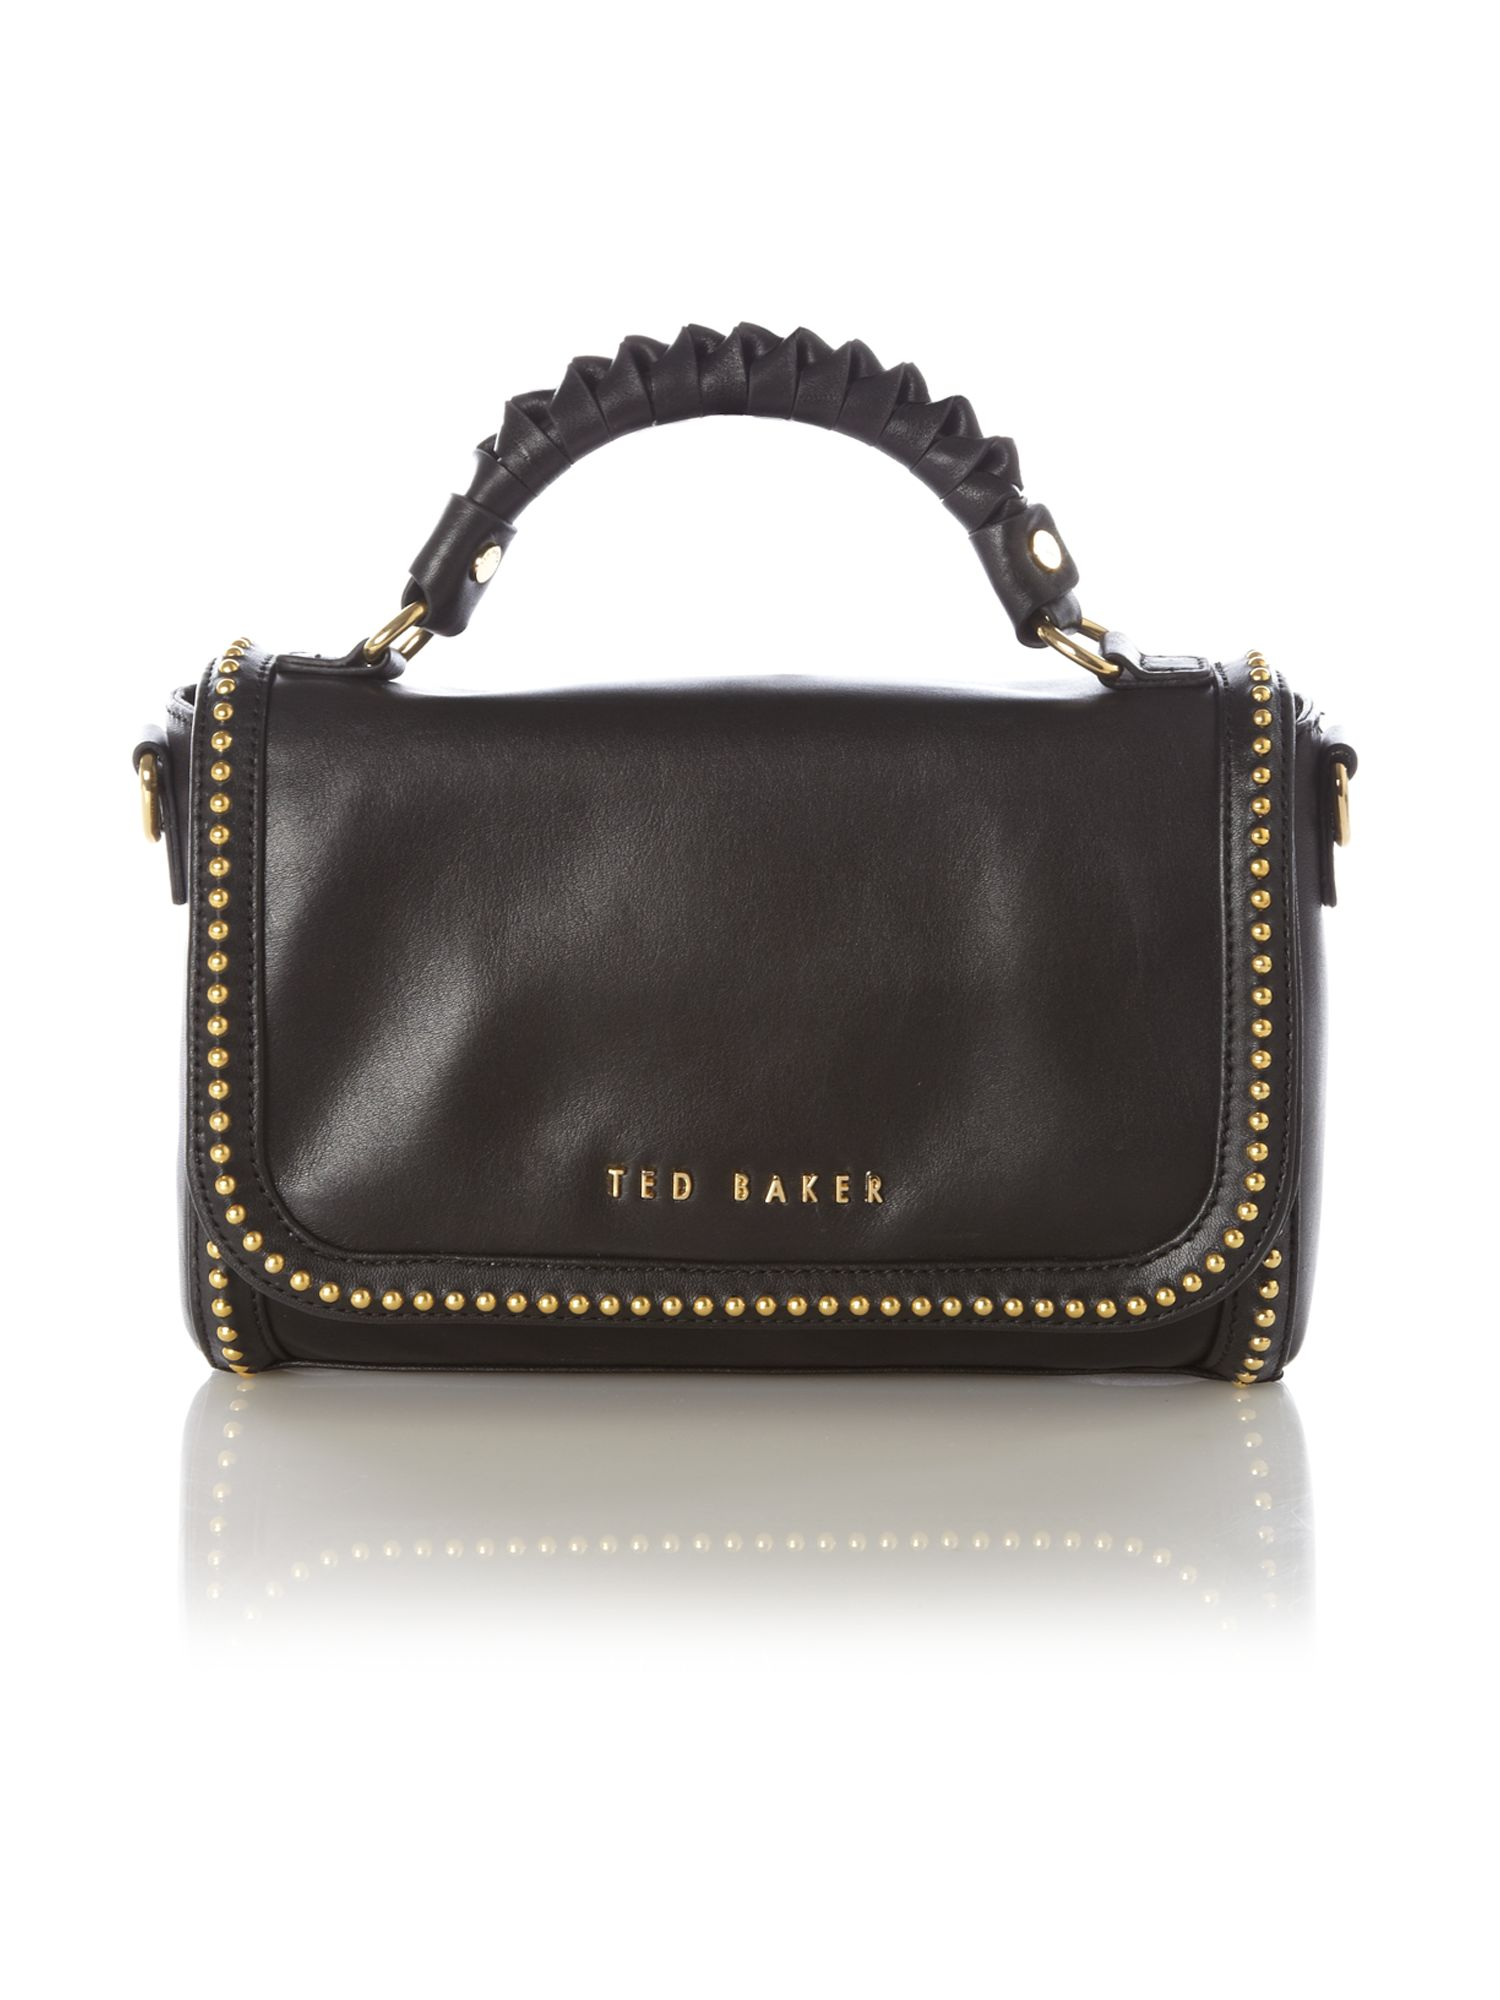 Ted Baker Knotted Handle Crossbody Bag In Black Lyst